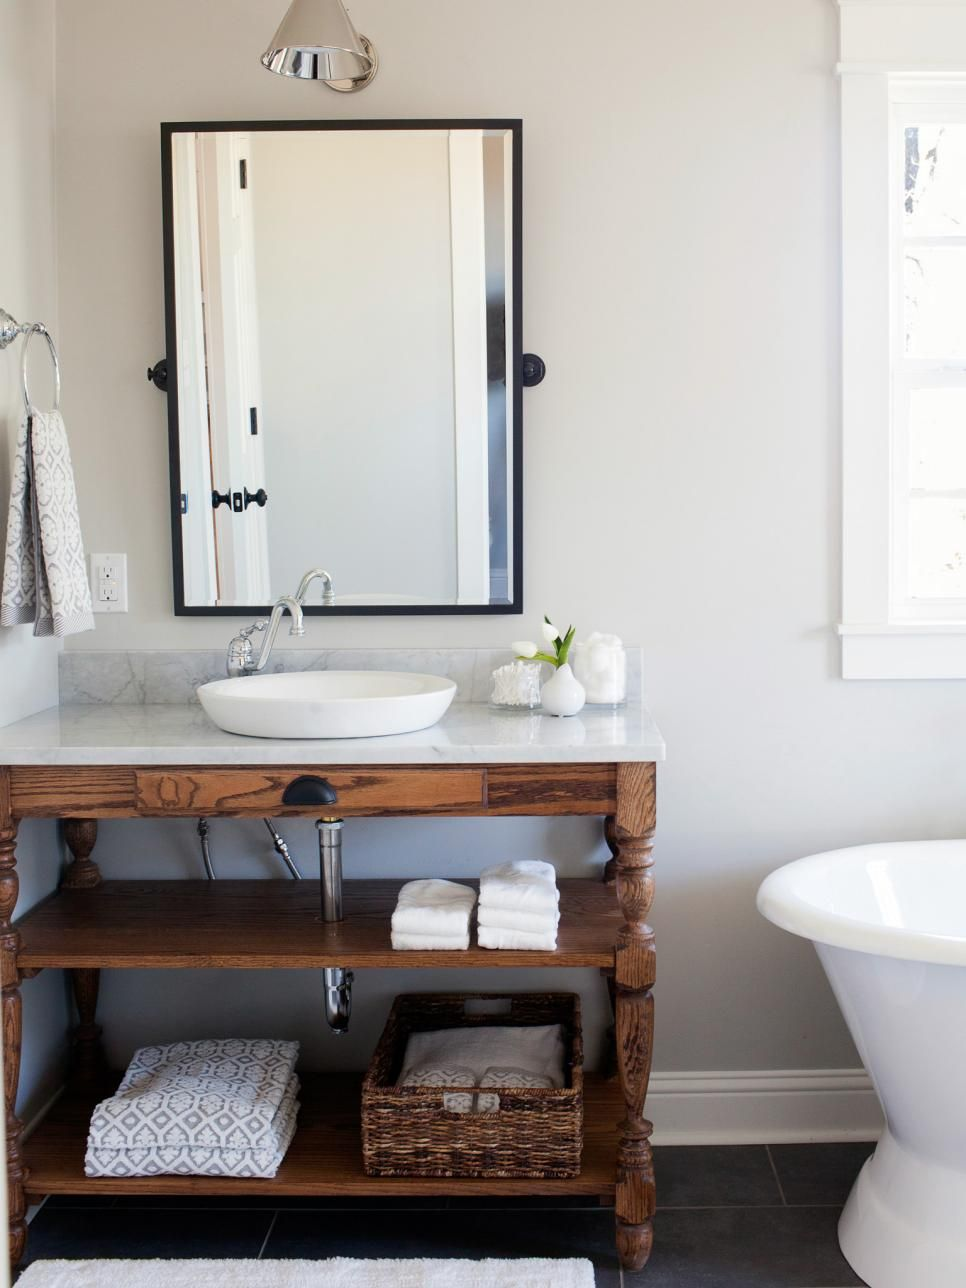 Fixer upper living rooms further joanna gaines fixer upper bathroom - Check Out Carpenter Clint Harp S Best Furniture Pieces As Seen On Hgtv S Fixer Upper